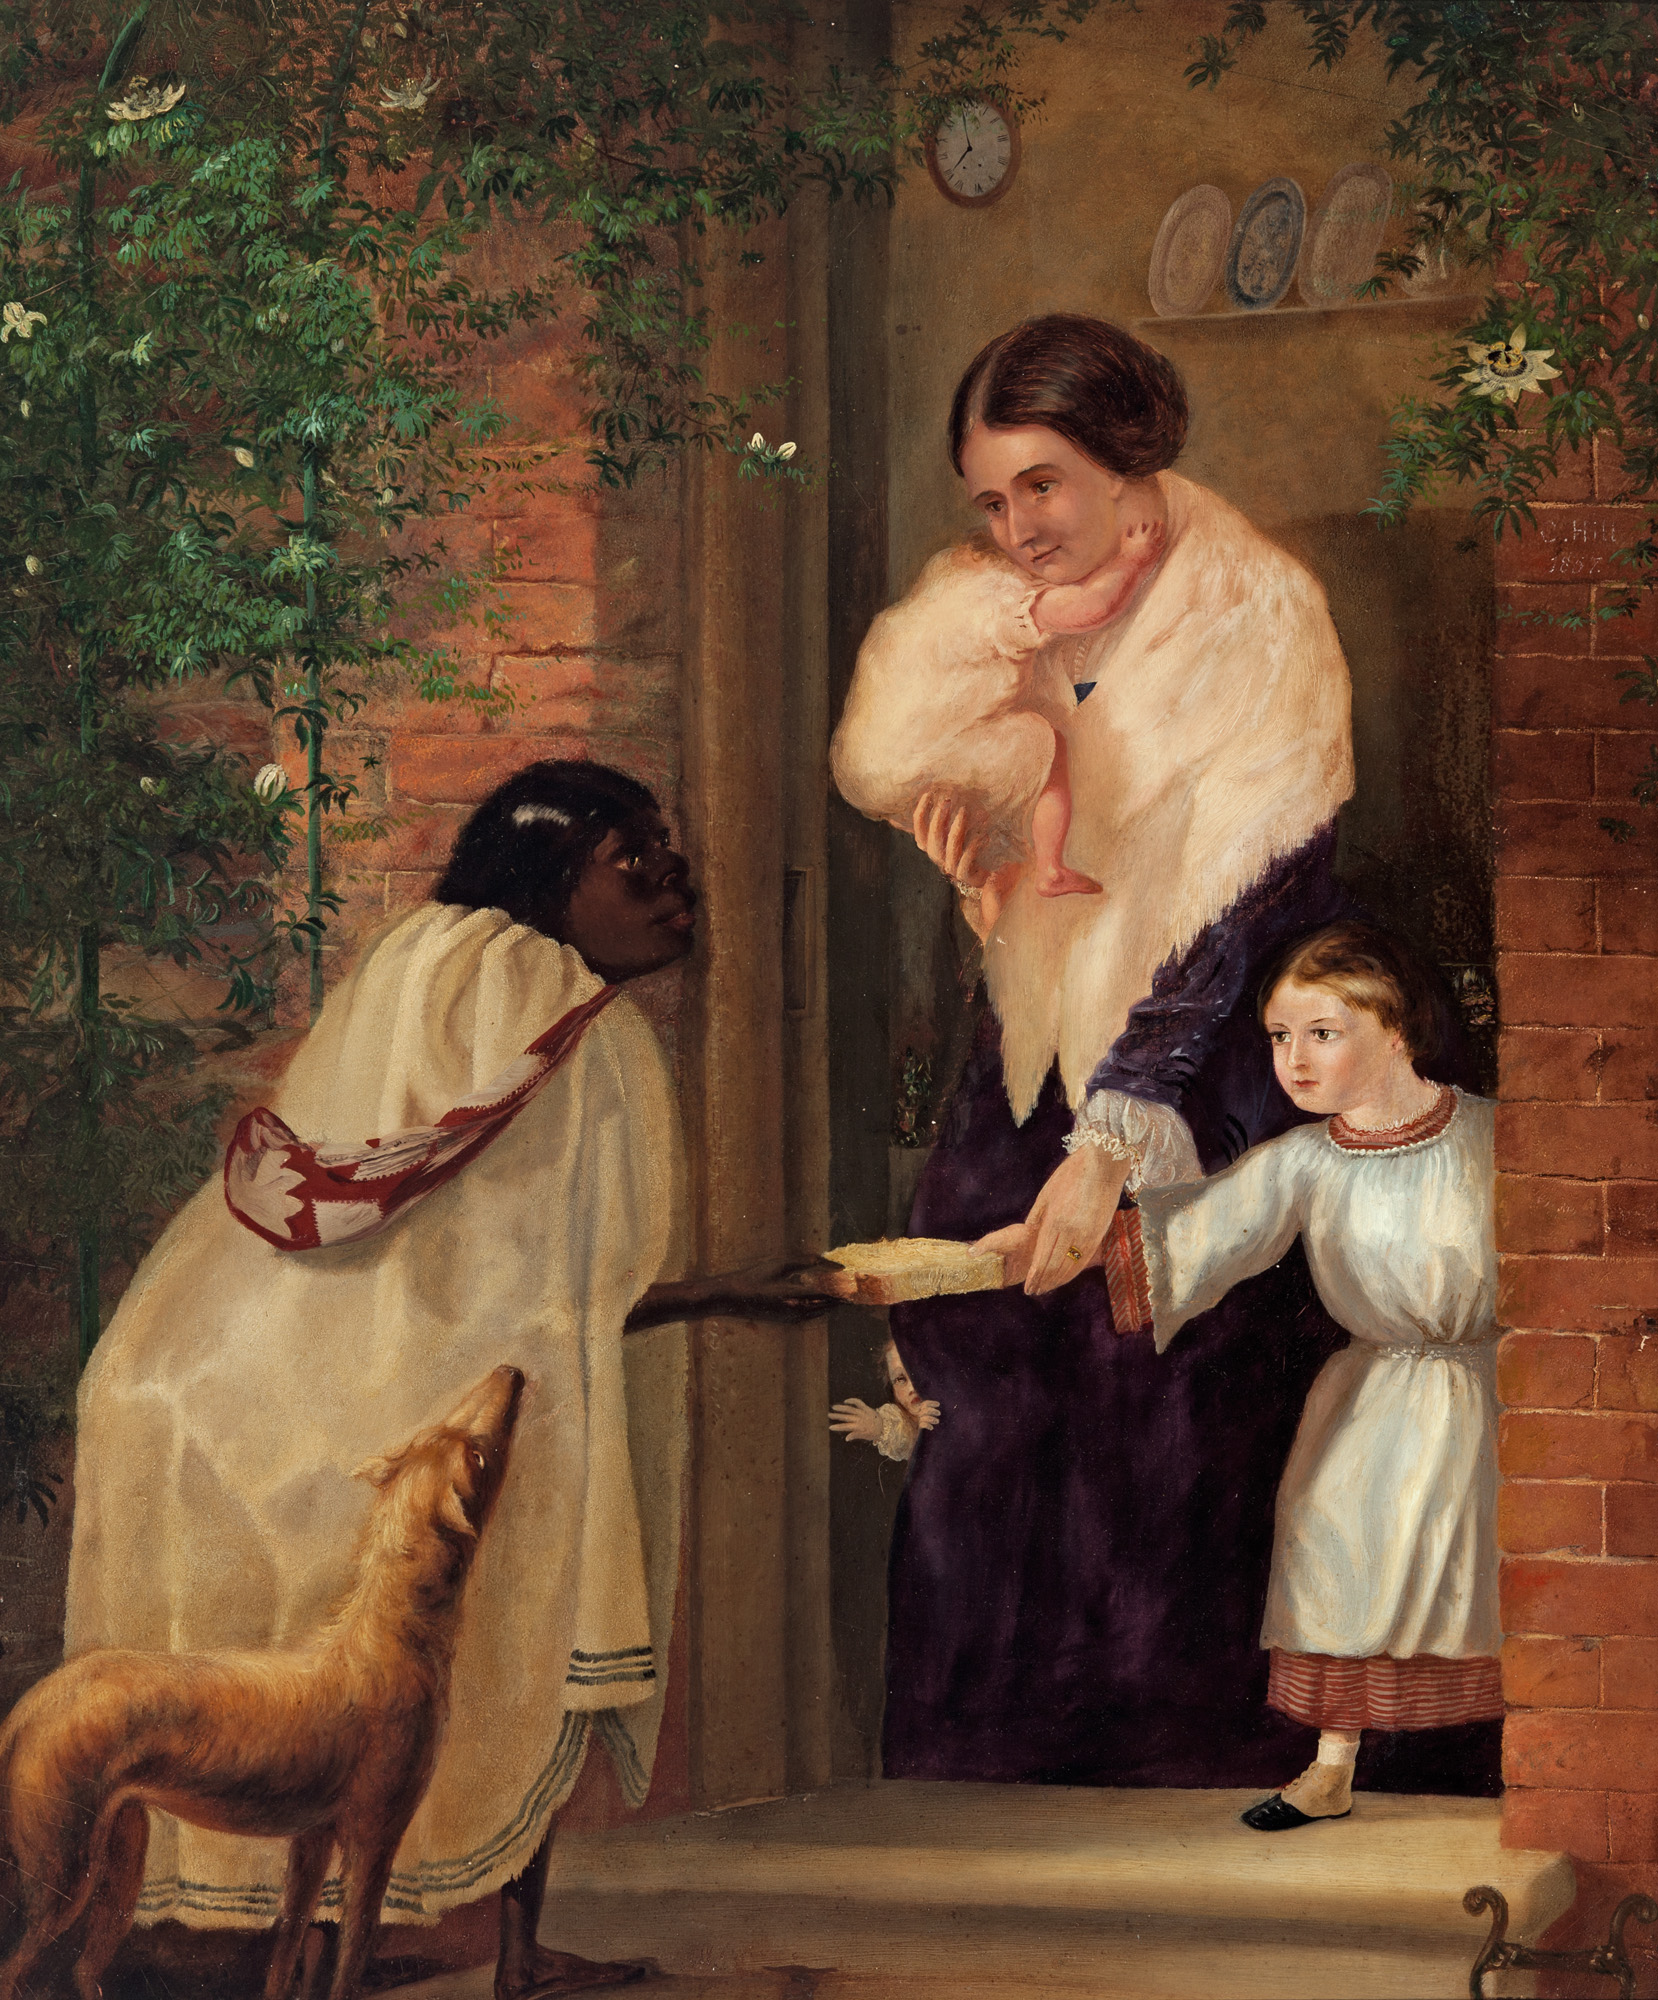 Charles Hill, Australia, 1824 - 1915,  The first lesson , 1857, Adelaide, oil on canvas; Gift of Mrs I. Rusk 1966, Art Gallery of South Australia, Adelaide.